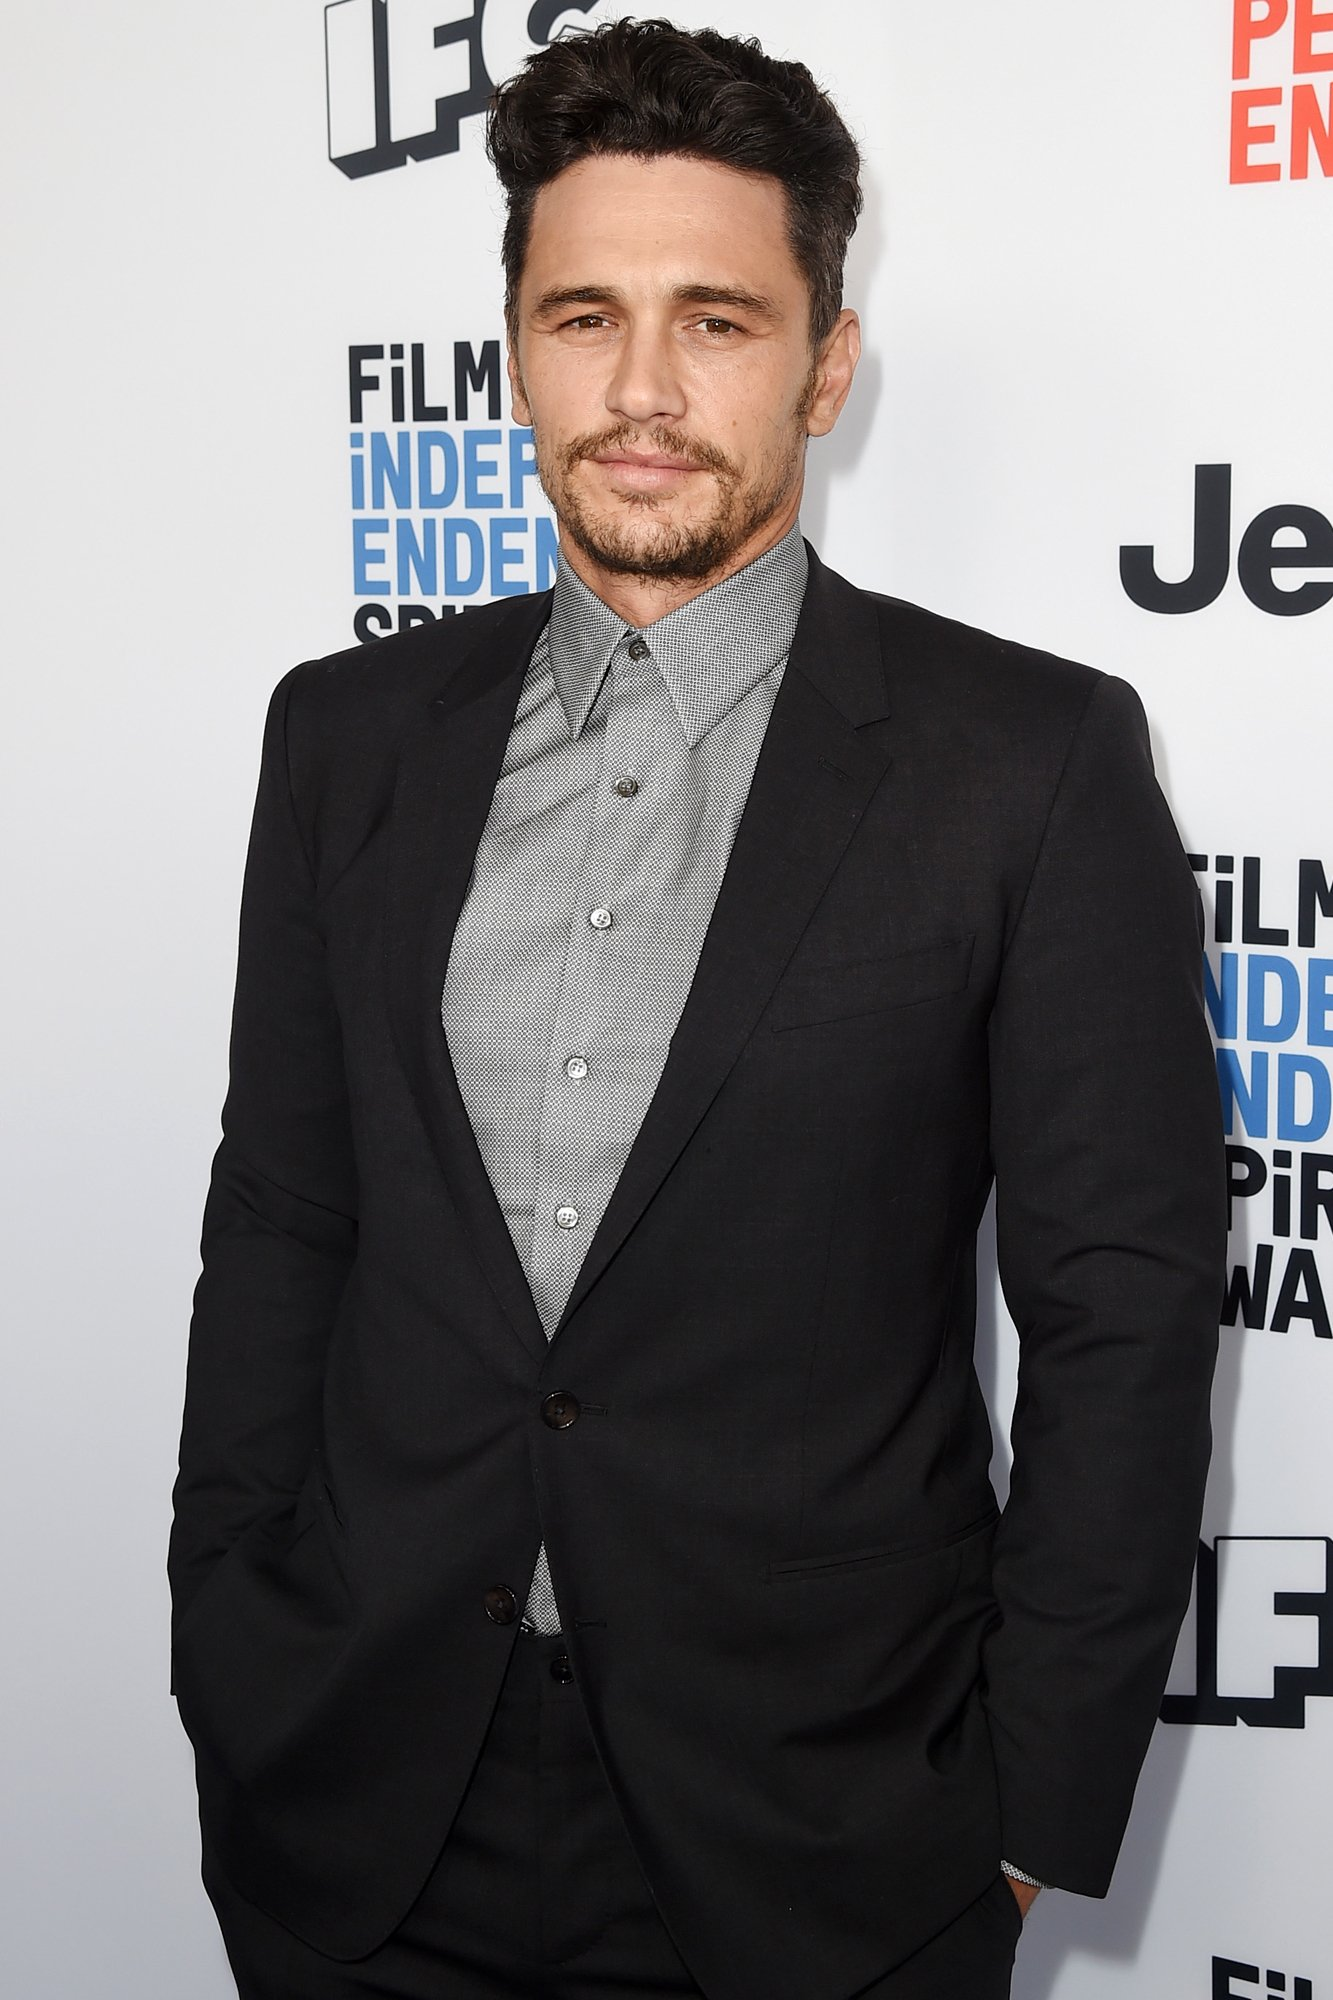 James Franco accused of sexual misconduct by five women